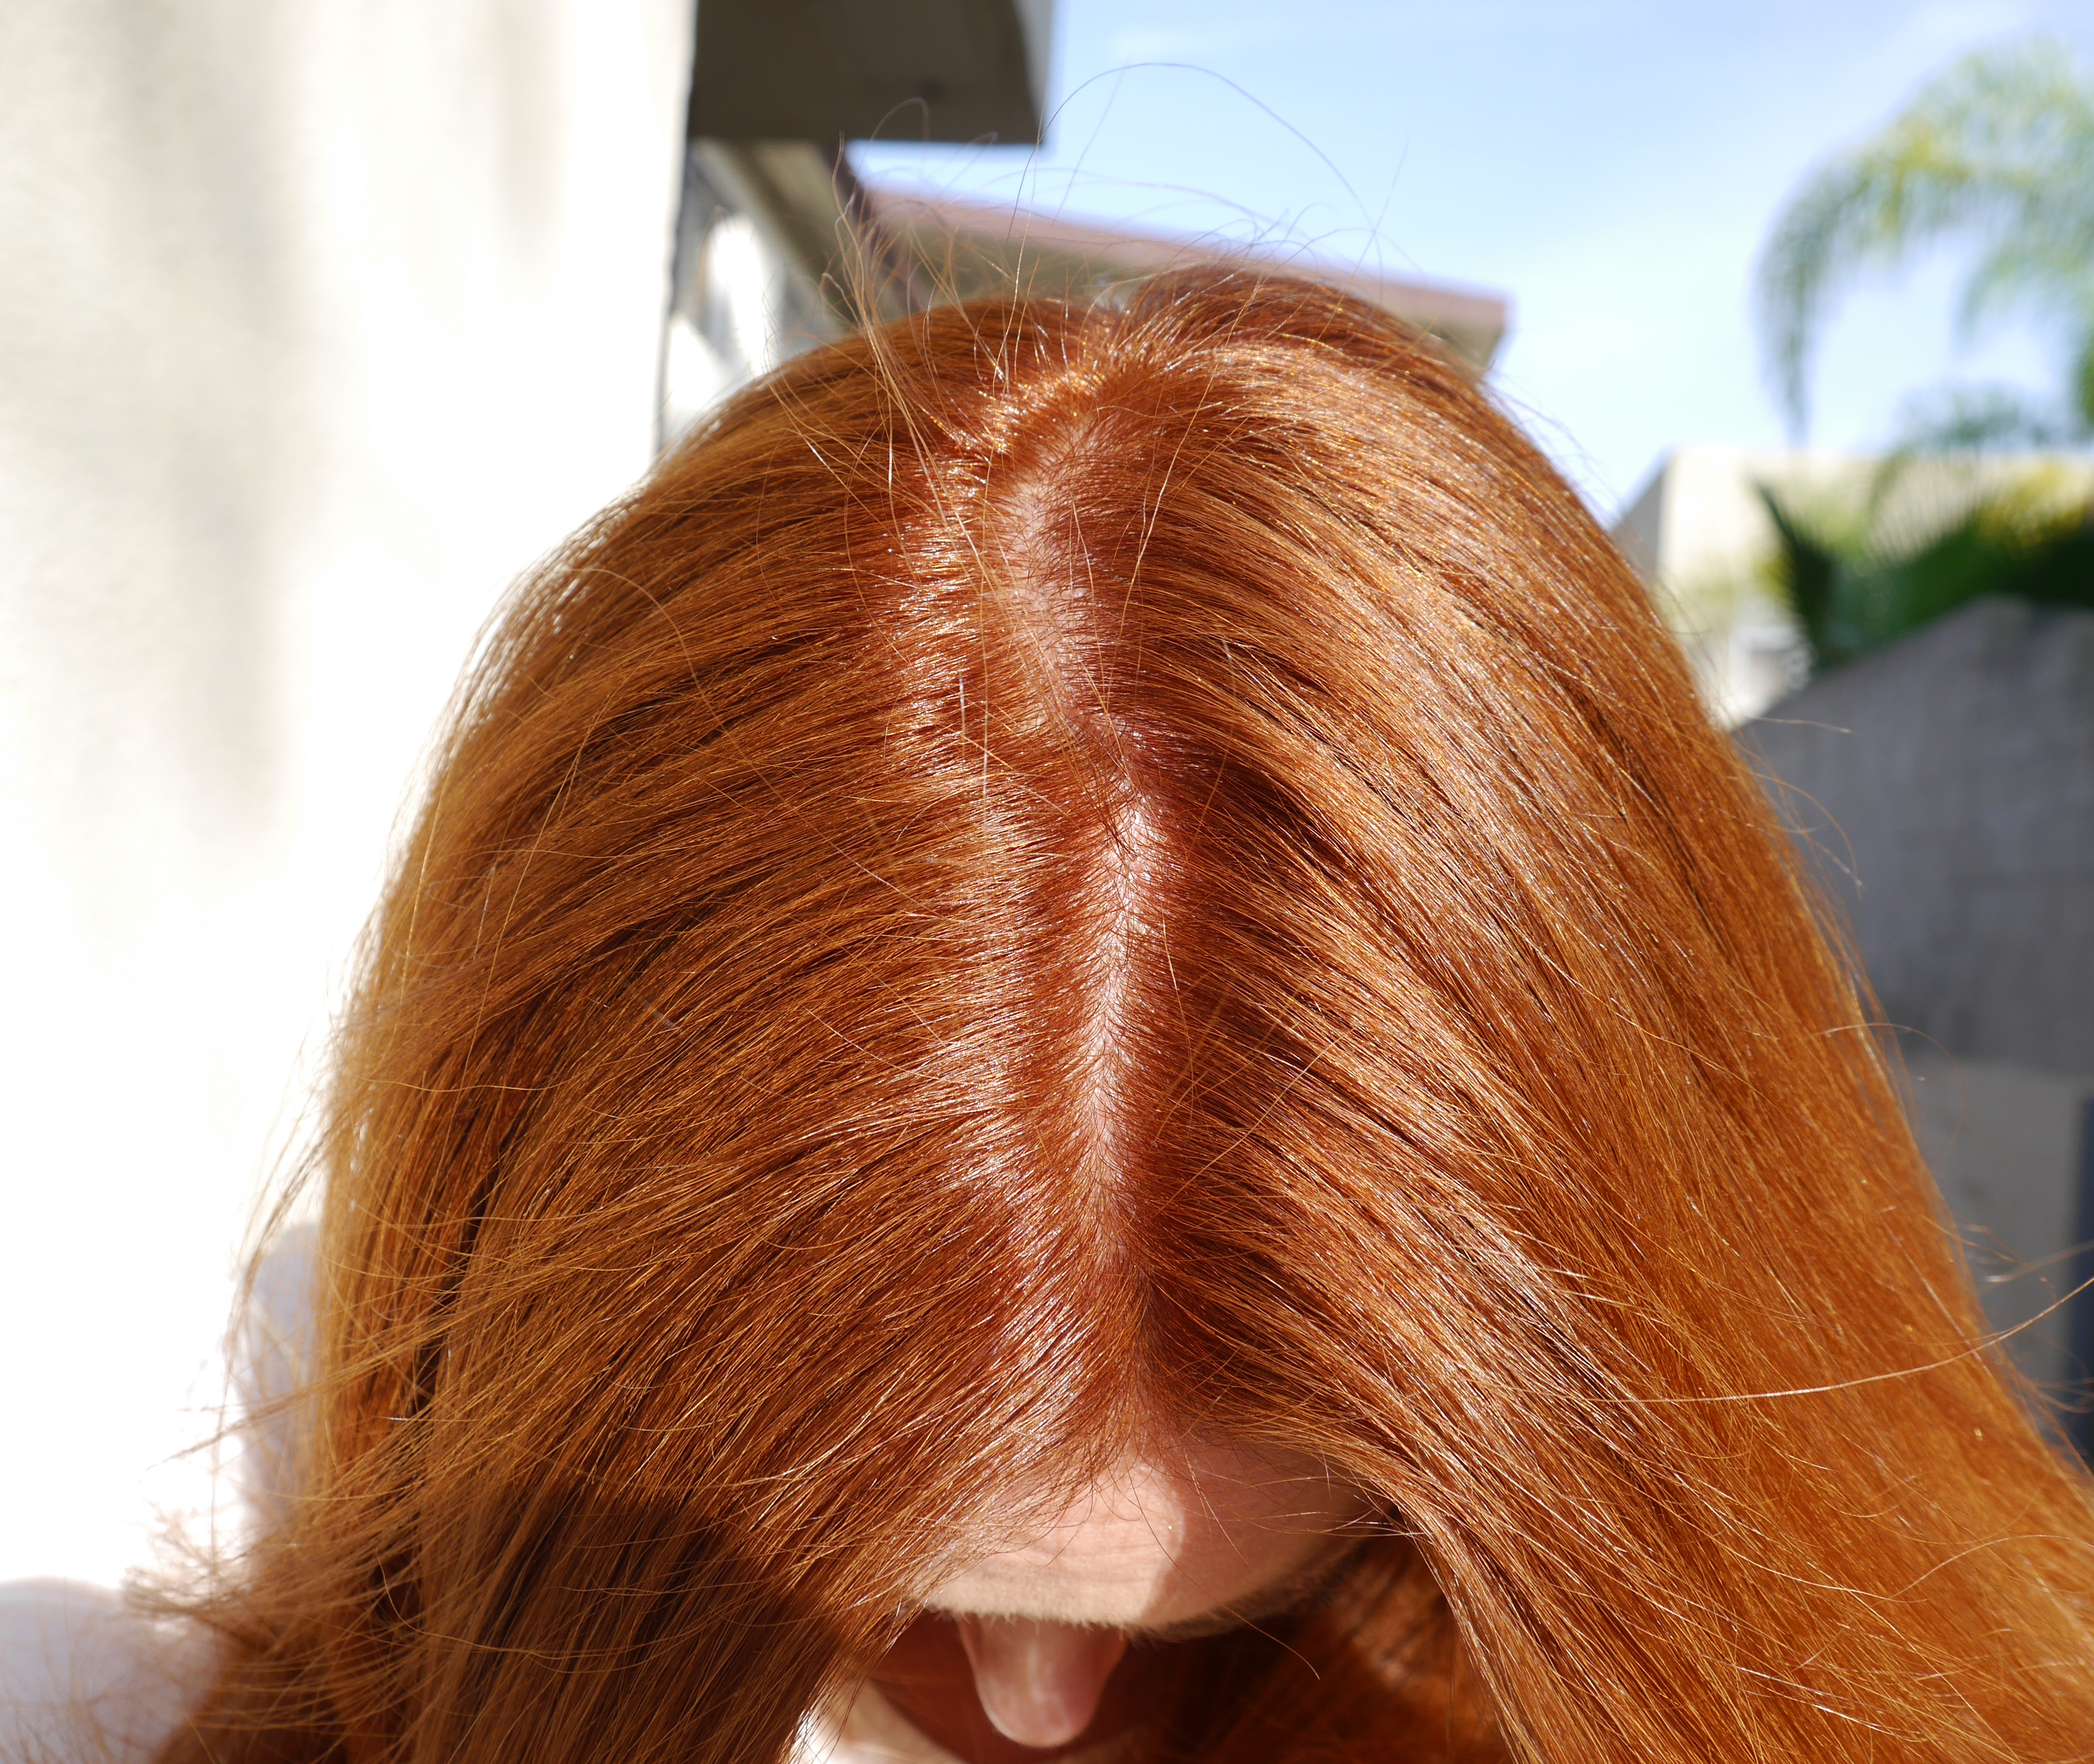 Strawberry Blonde Hair: My Epic Journey Part 3: The Copper